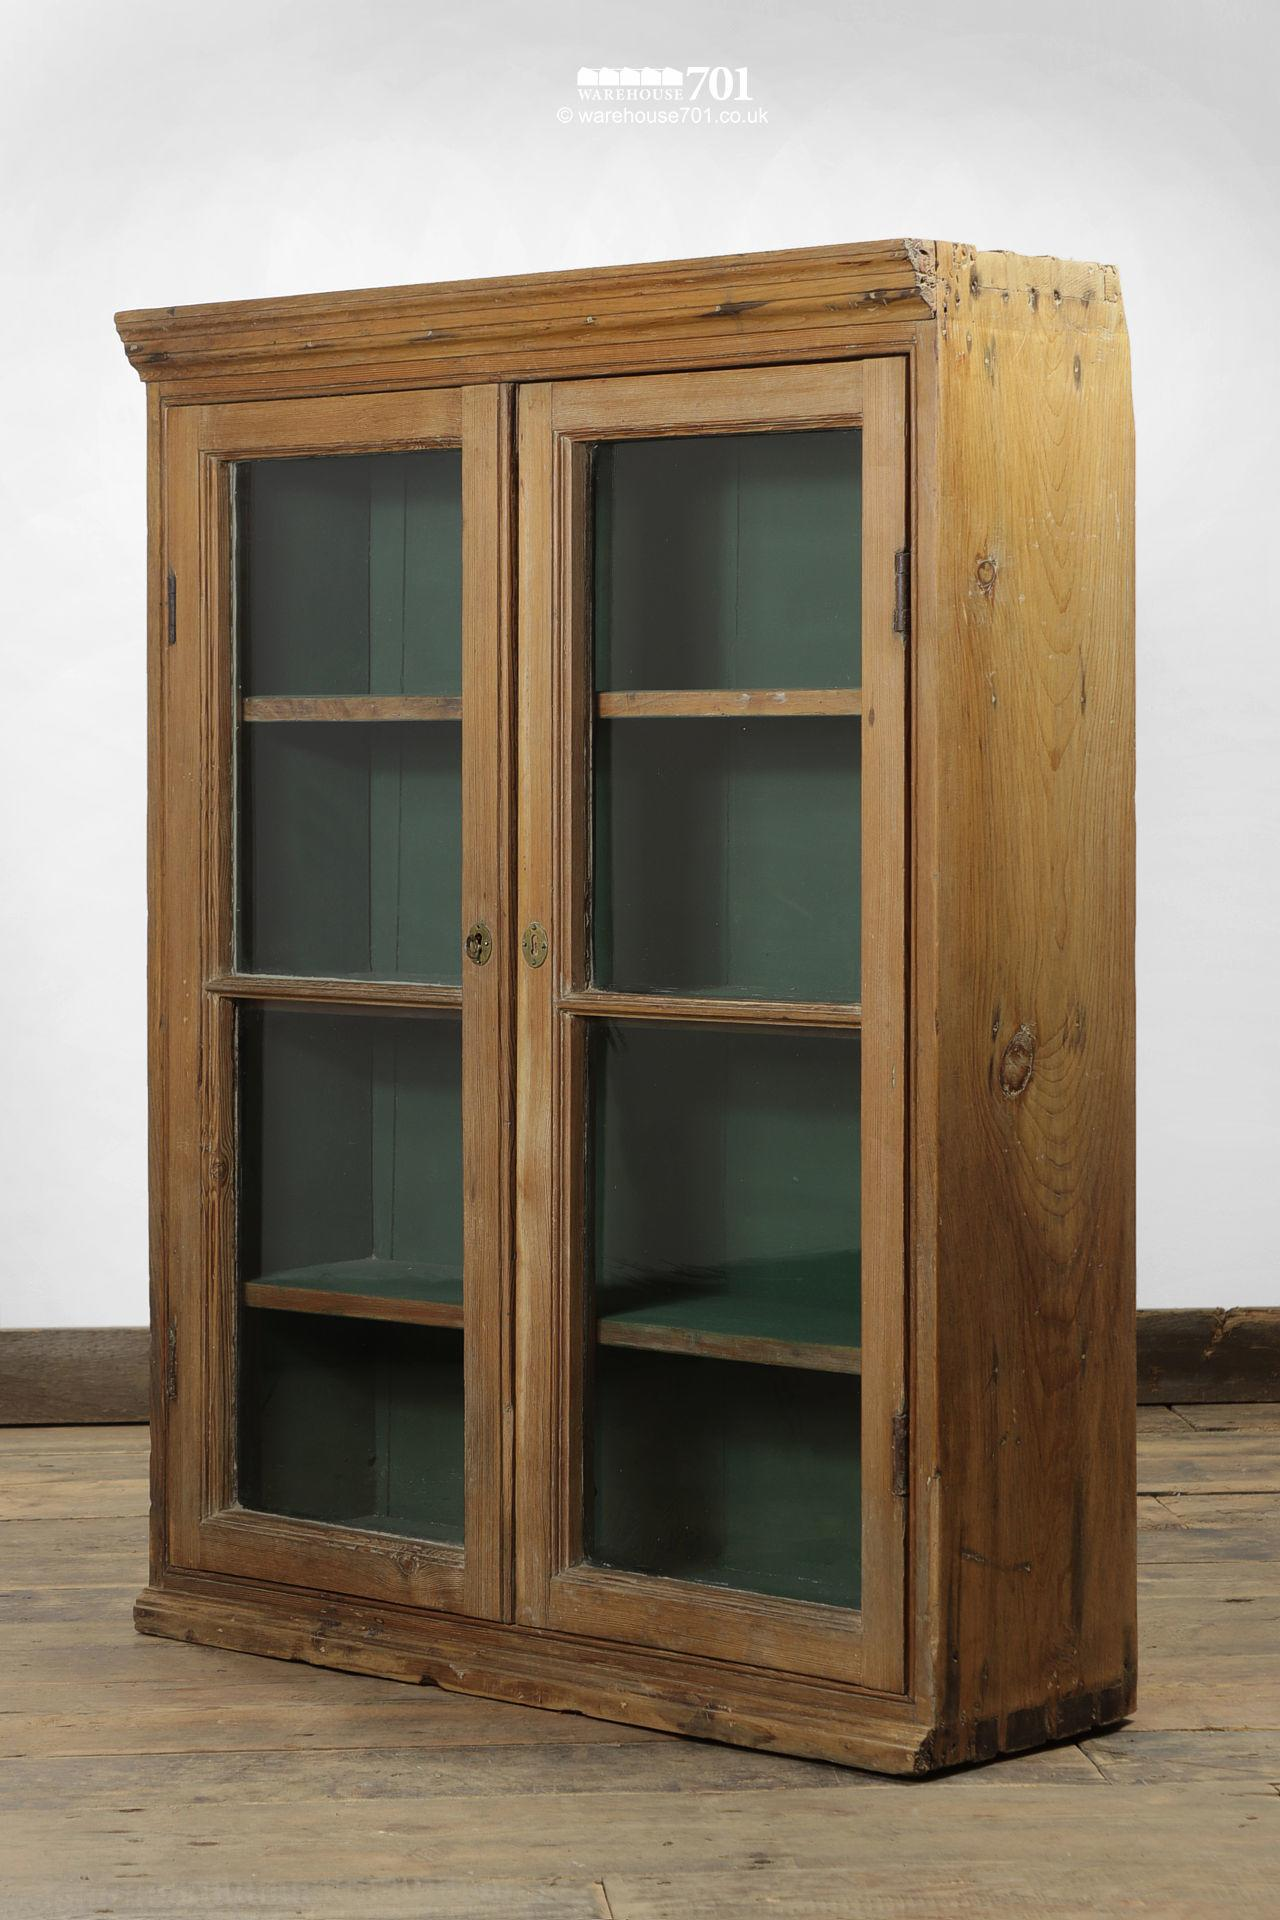 Green Interior Antique Pine Glazed Display Cabinet #7